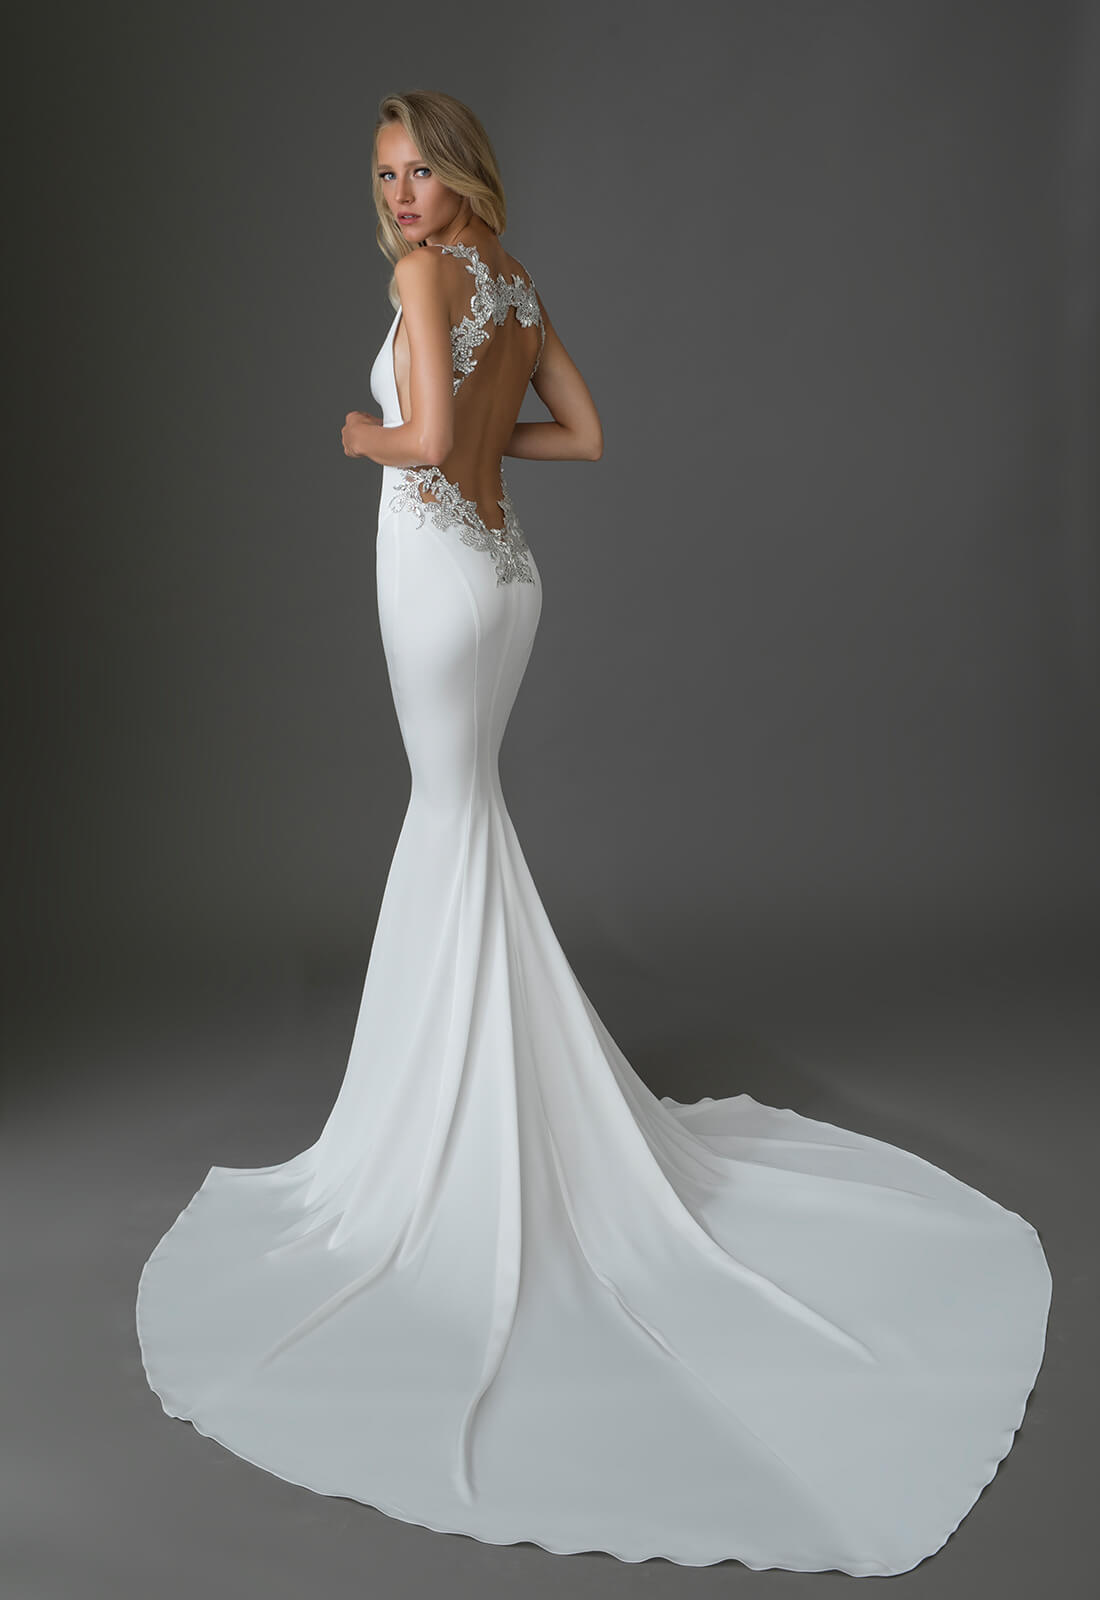 Crepe Gown With Vneck And Embellished Low Keyhole Back